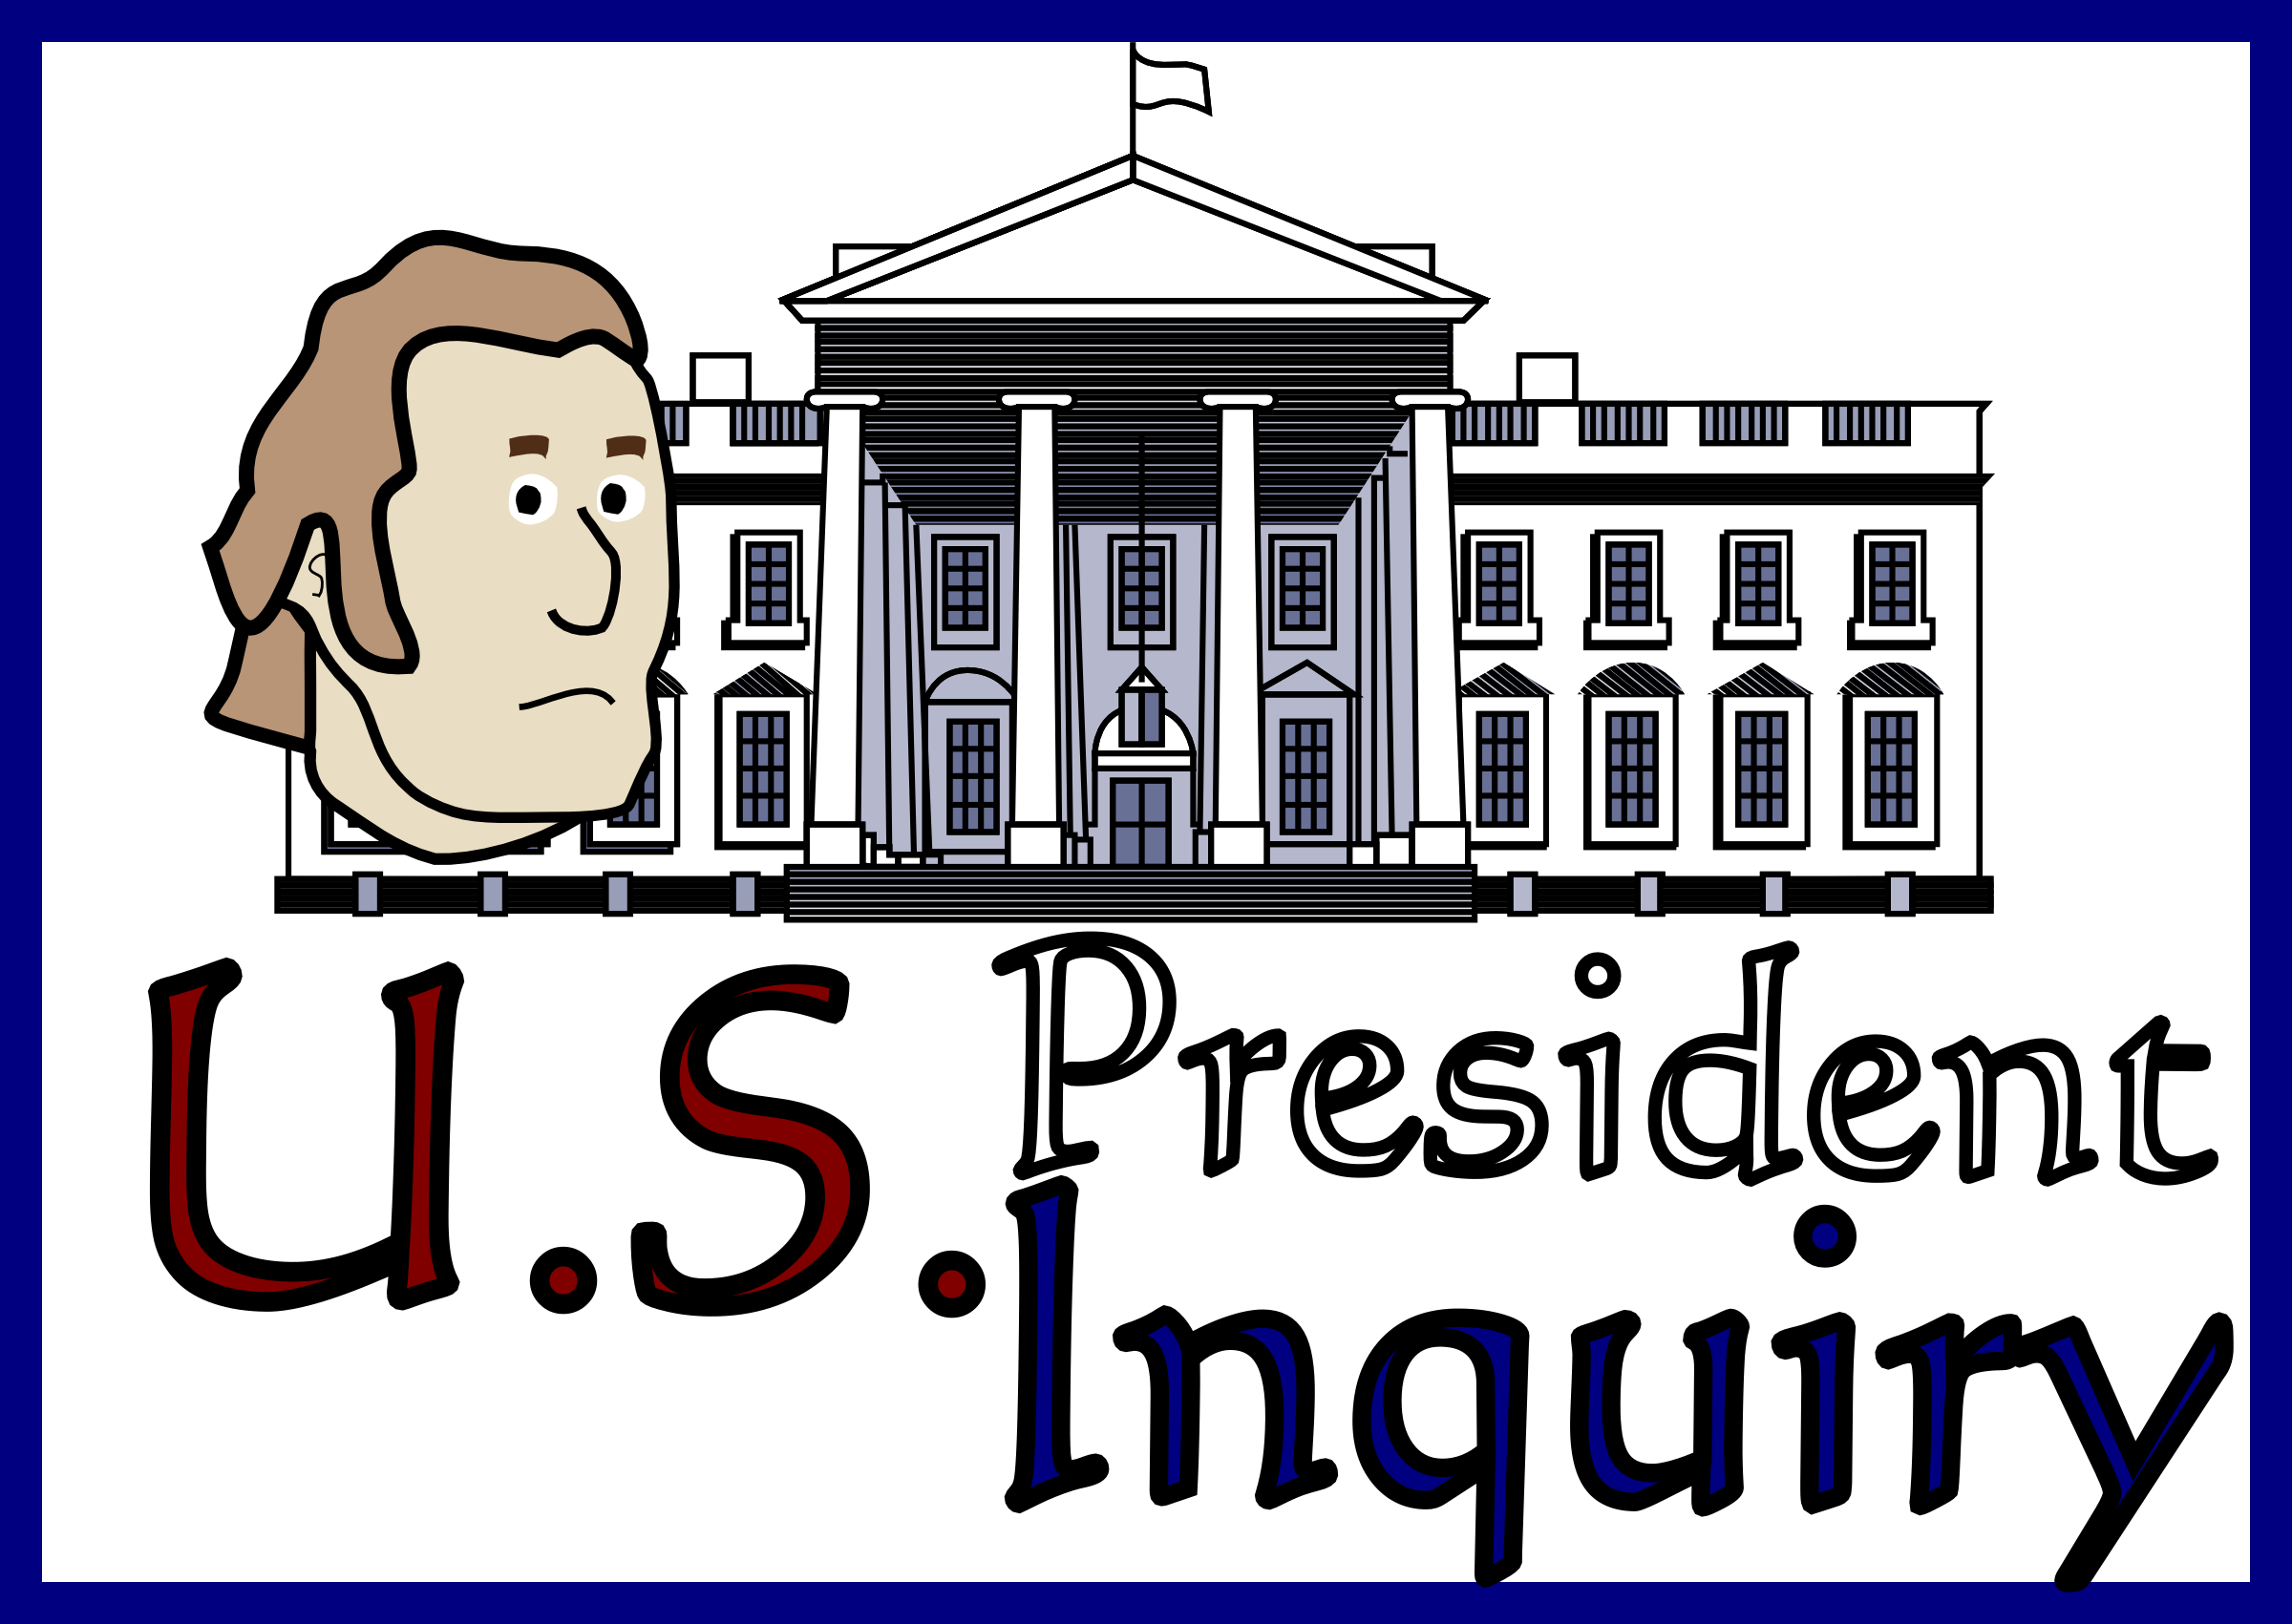 Us president inquiry 6th 12th grade math project with real world us president inquiry 6th 12th grade math project with real world data free fandeluxe Choice Image